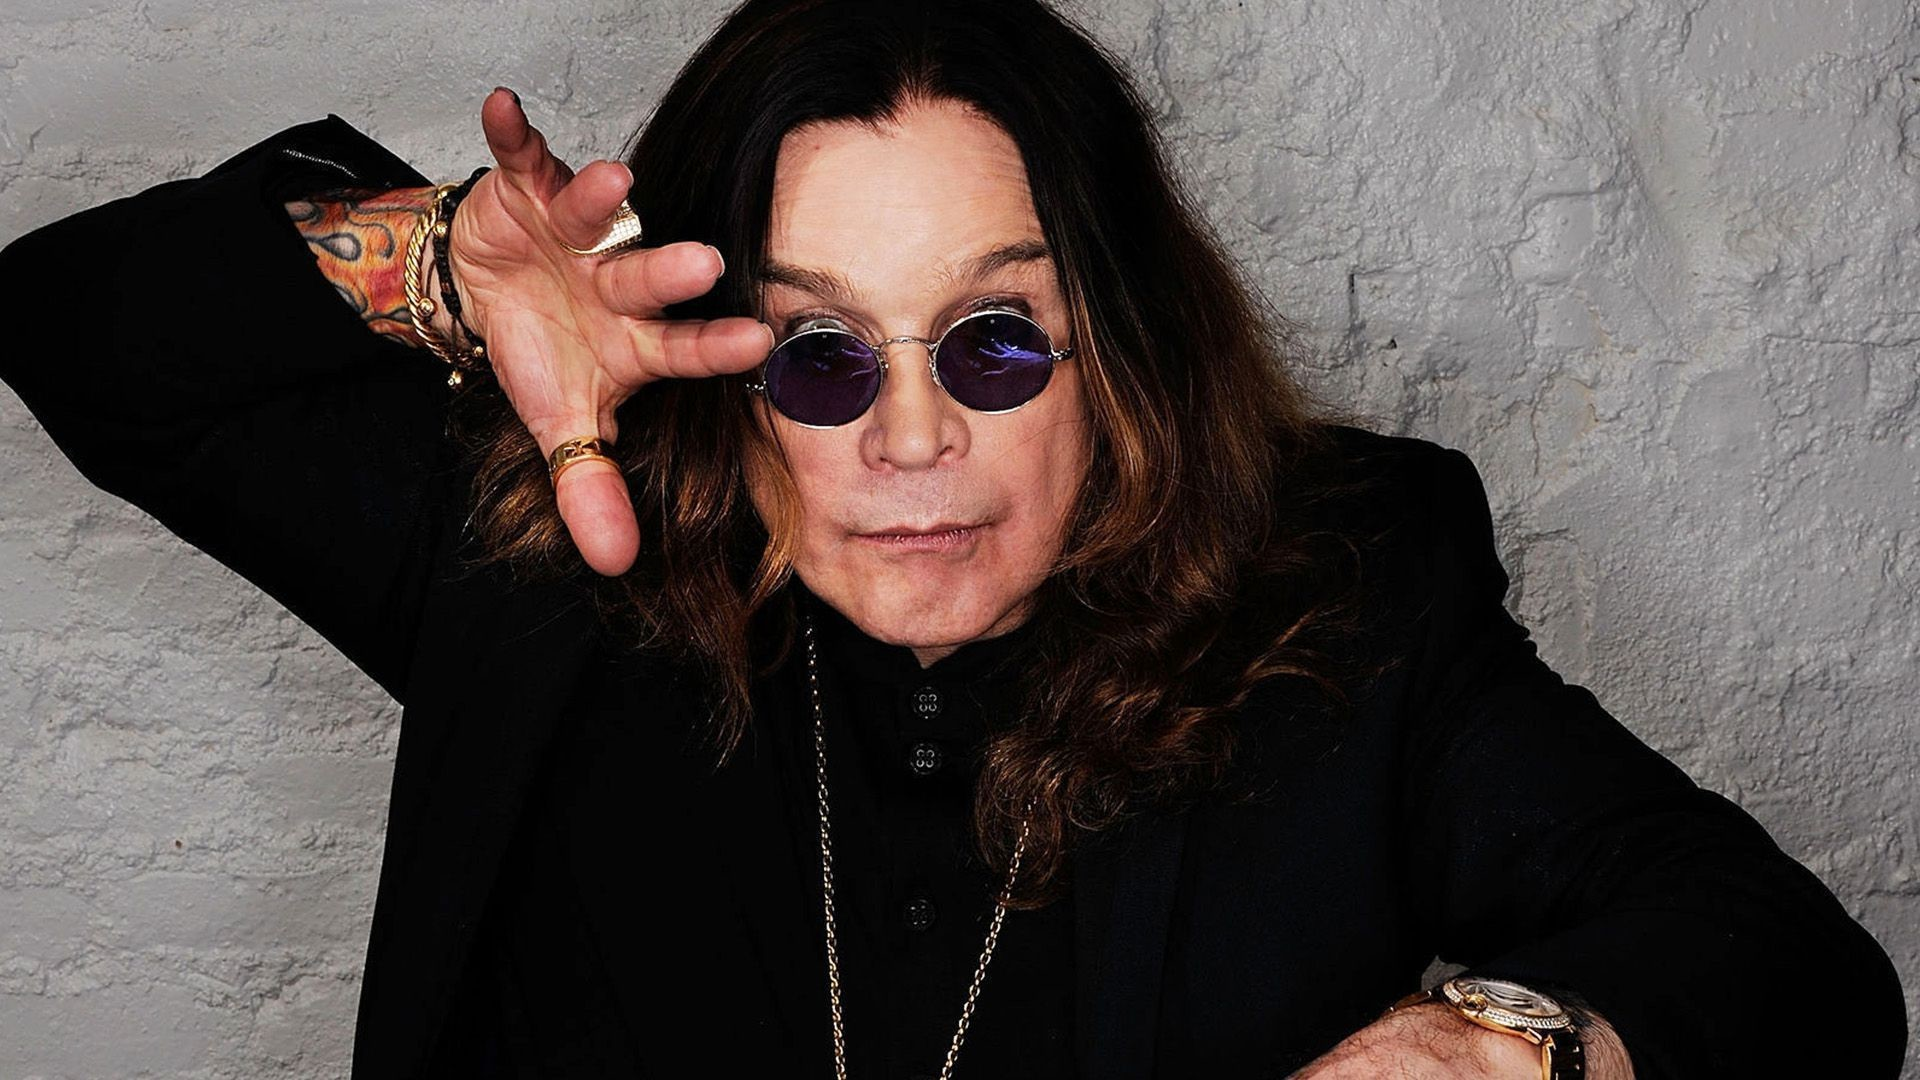 Ozzy Osbourne Wallpapers Backgrounds